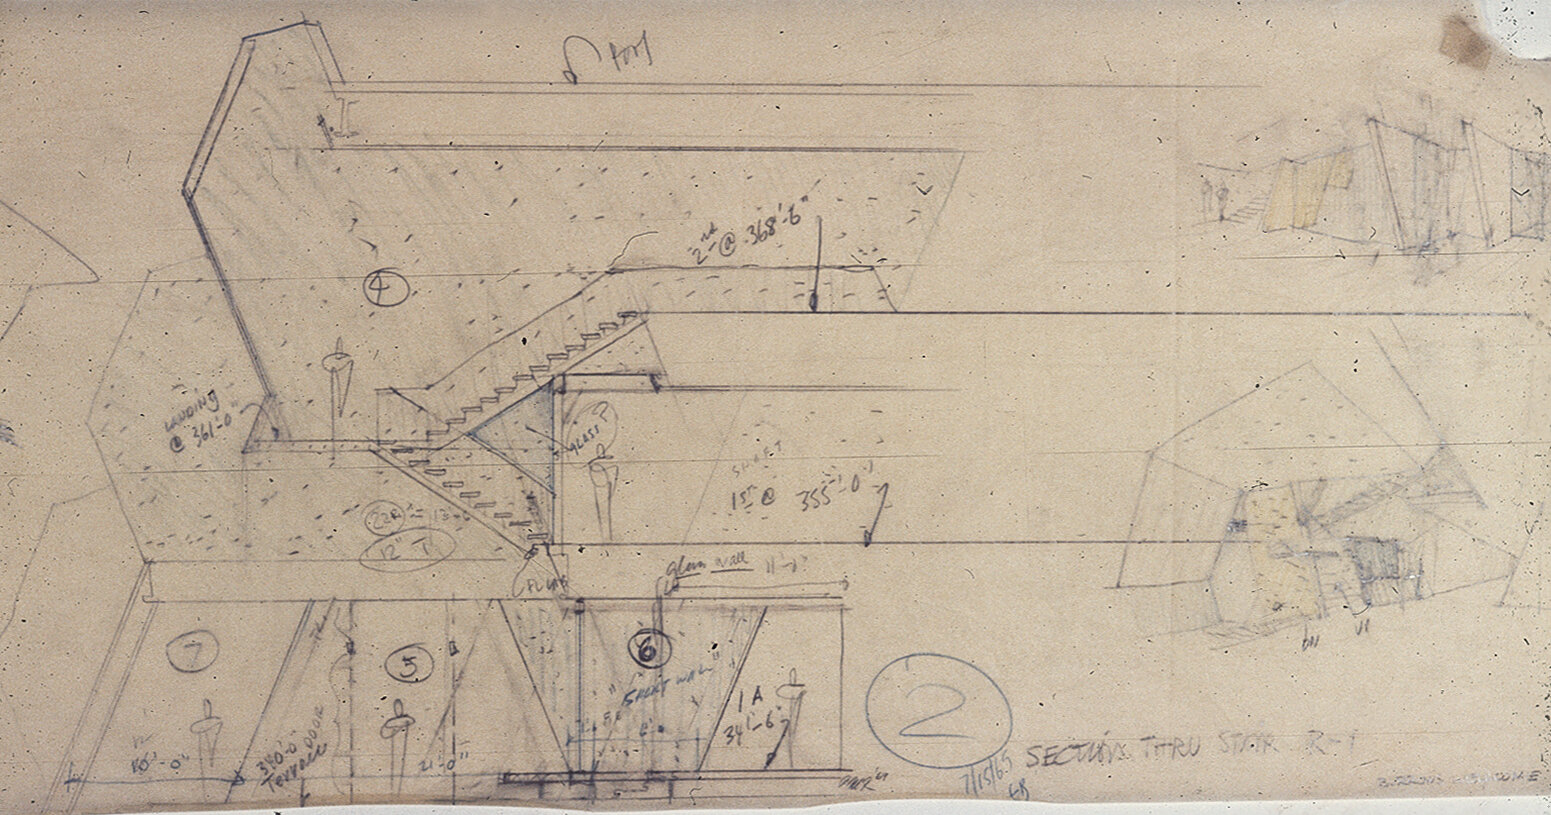 Burroughs Wellcome Company, Research Triangle Park, North Carolina. Section thru Stair. Sketch.